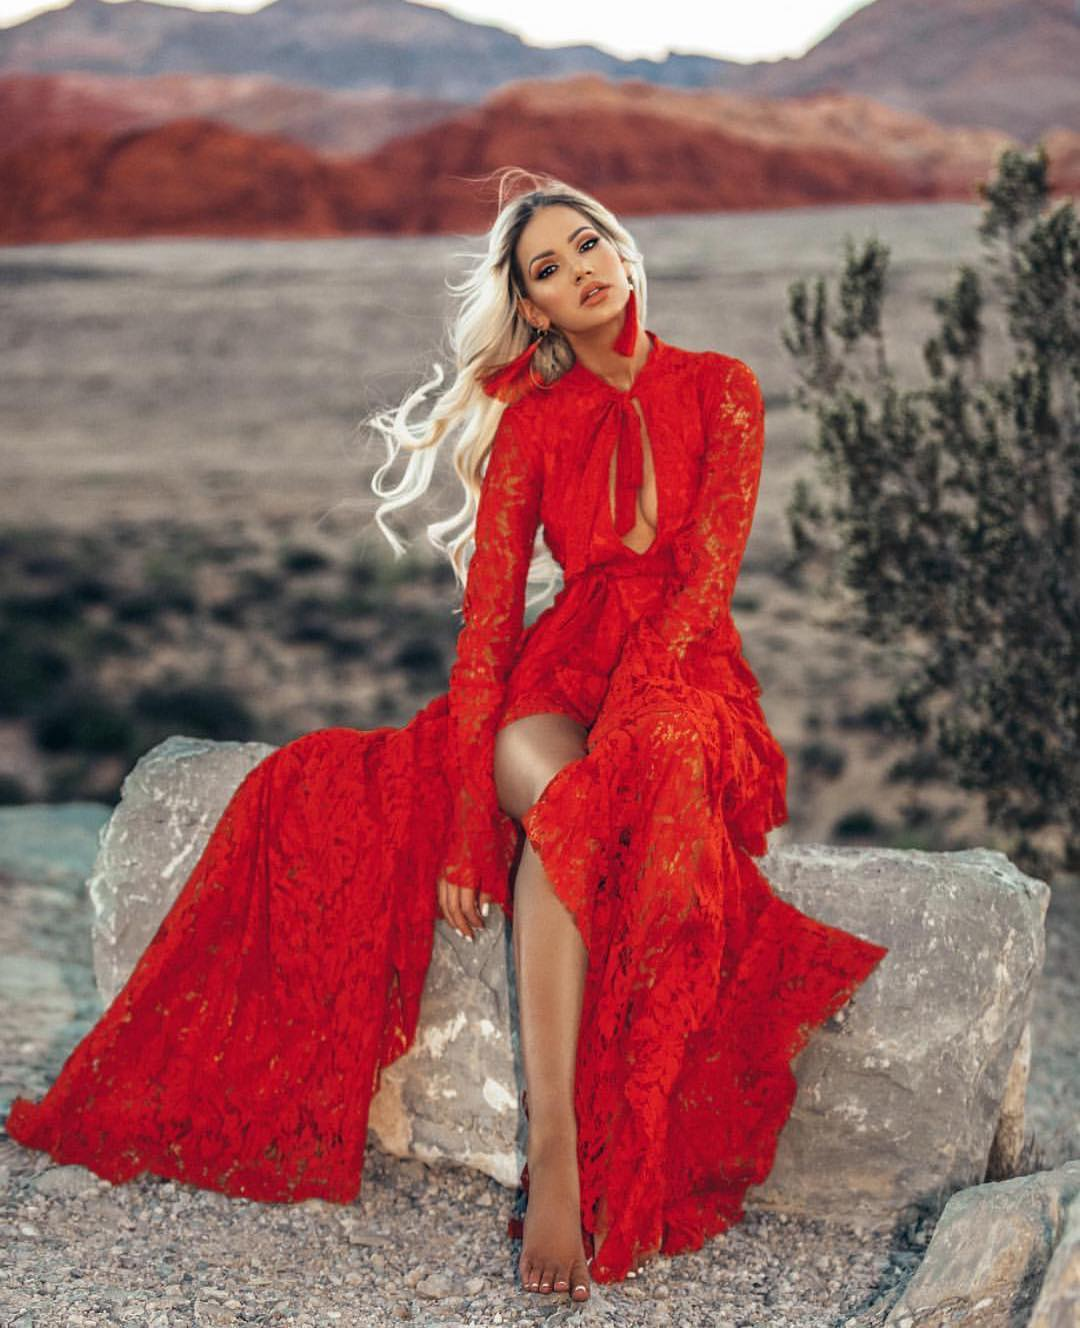 Red Maxi Lace Dress With Deep Cleavage And High Slit For Summer Vacation 2020